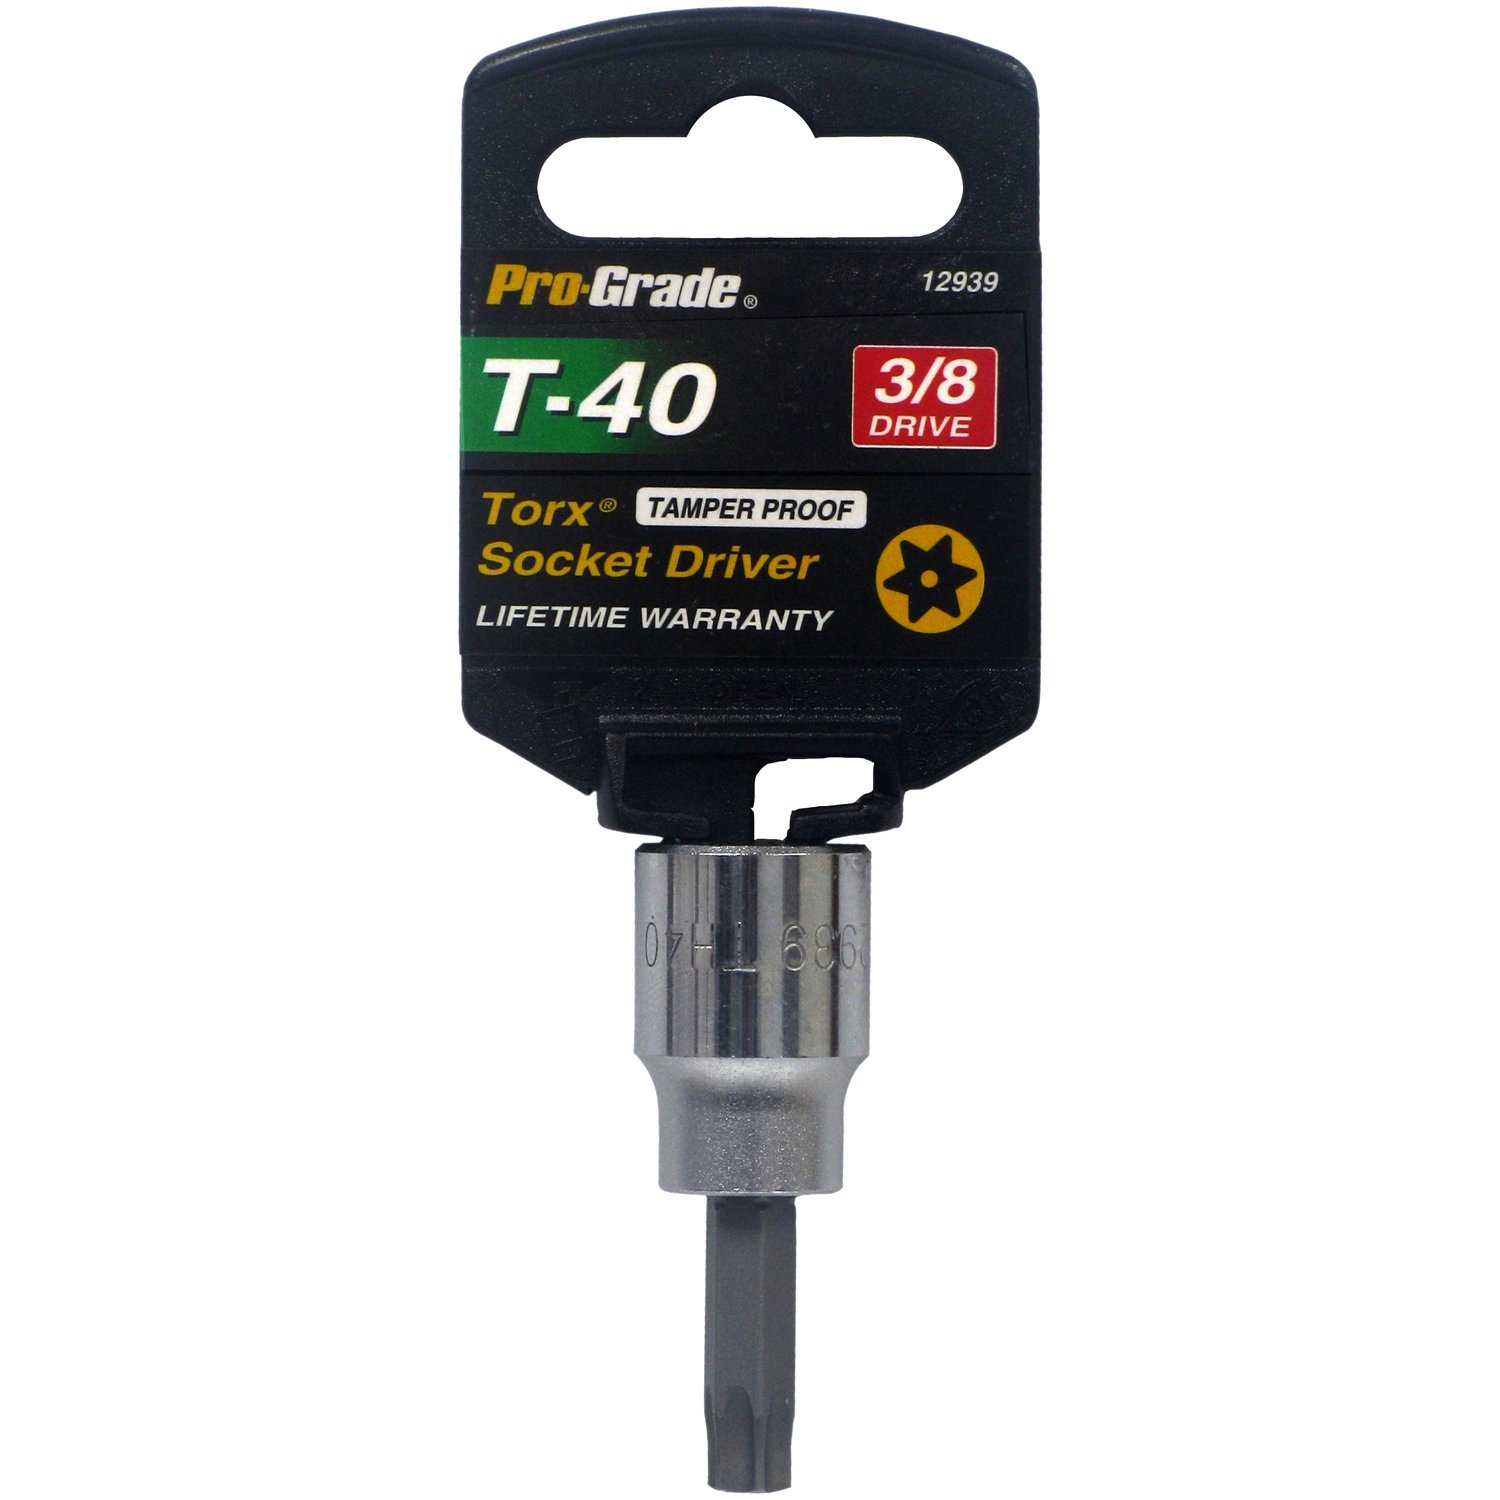 Pro-Grade 12944 3/8-Inch Drive with T45 Tamper Proof Torx Socket